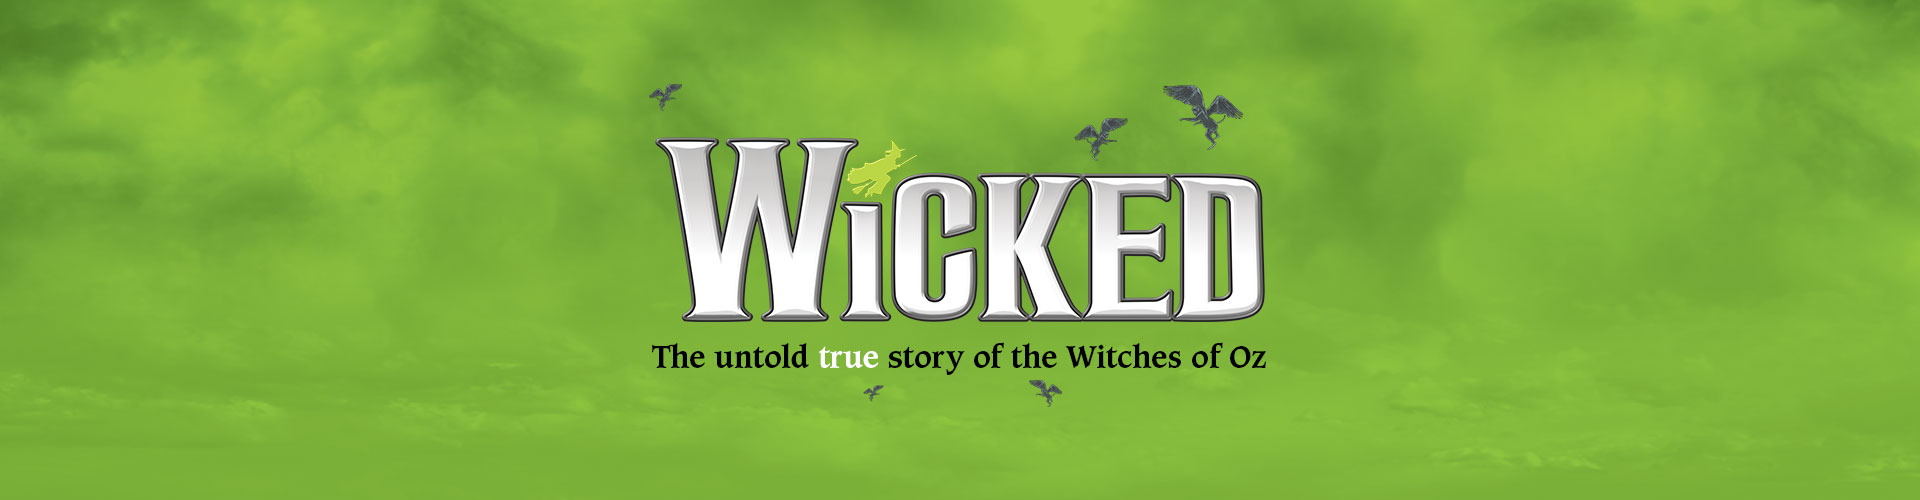 Wicked - Cancelled